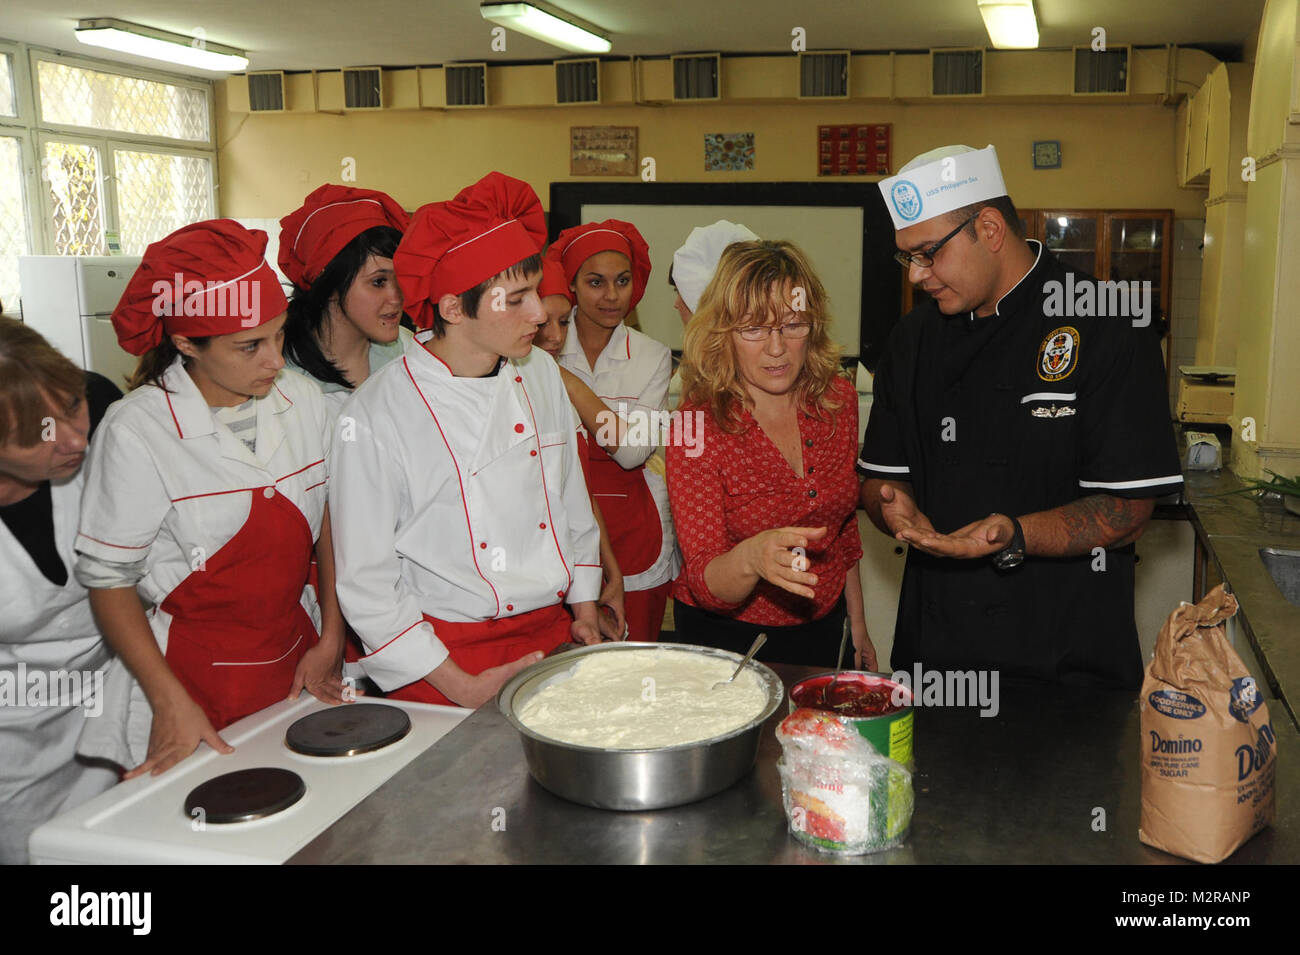 111026-N-RB564-028: BURGAS, Bulgaria (Oct. 26, 2011) - Culinary Specialist 2nd Class Eber Barraza explains to Bulgarian - Stock Image